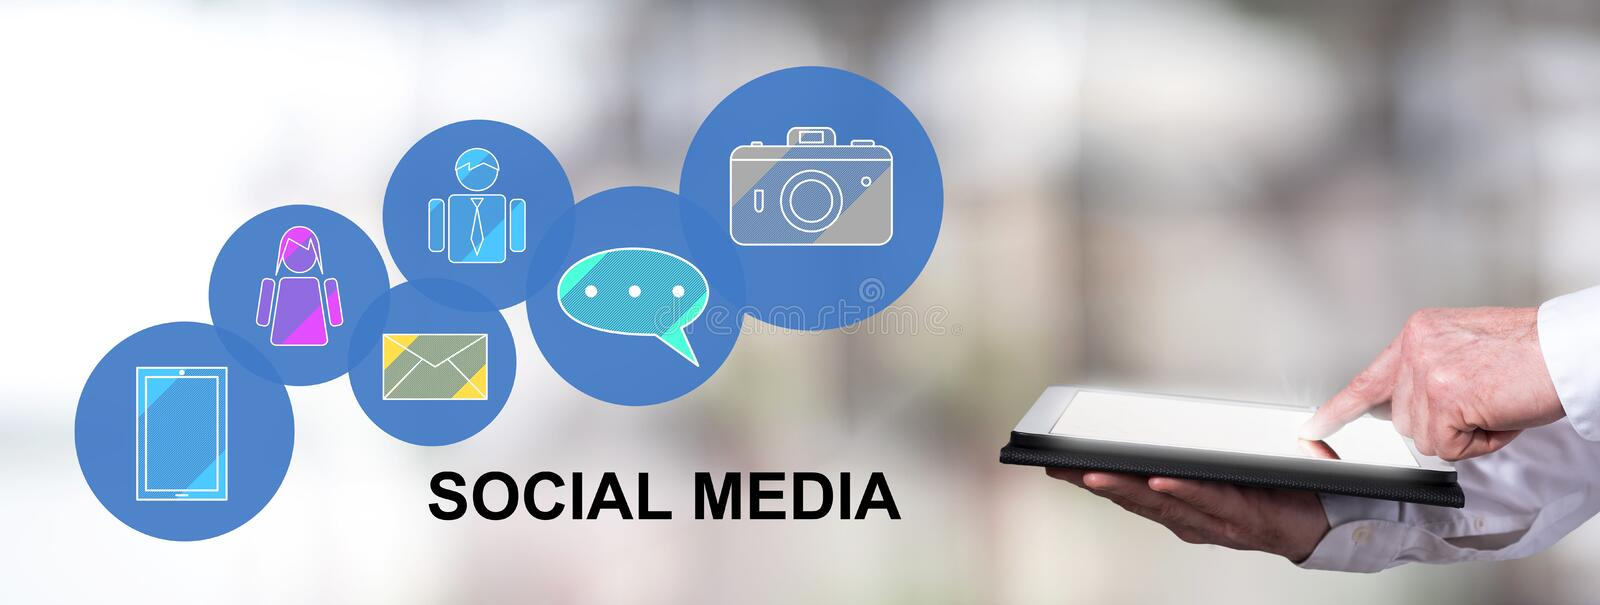 Social media concept with man using a tablet. Man using a tablet with social media concept stock images